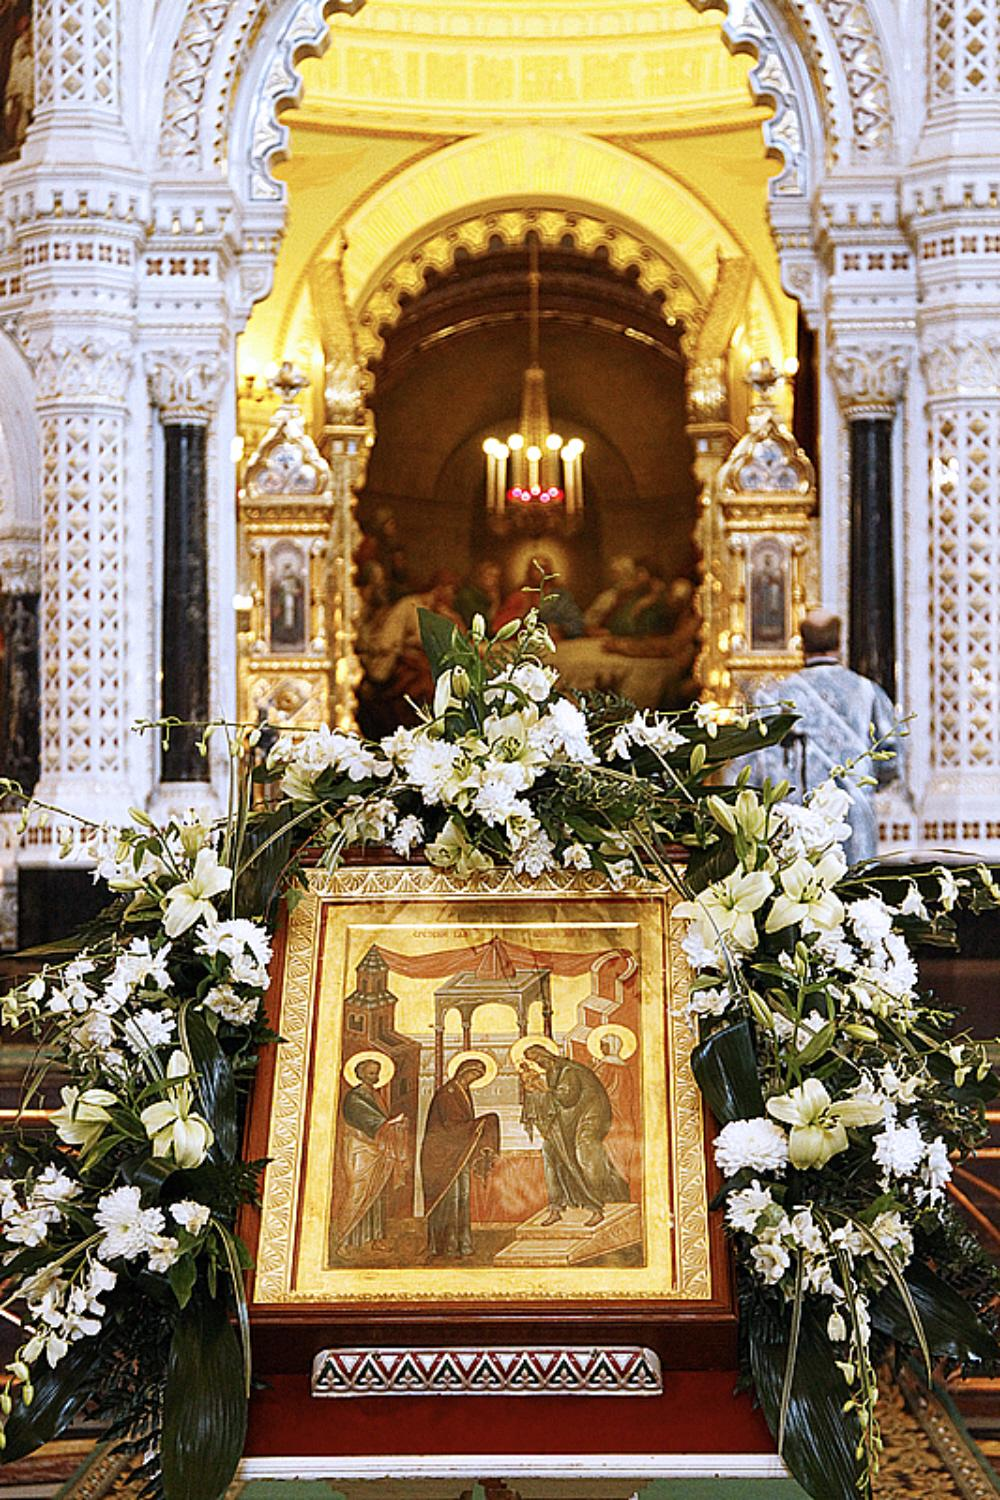 christ the savior essay Essay #1: eagerly await the savior as you prepare for death pastor mikhail starikov christian evangelical lutheran church, russia  in our savior jesus christ.